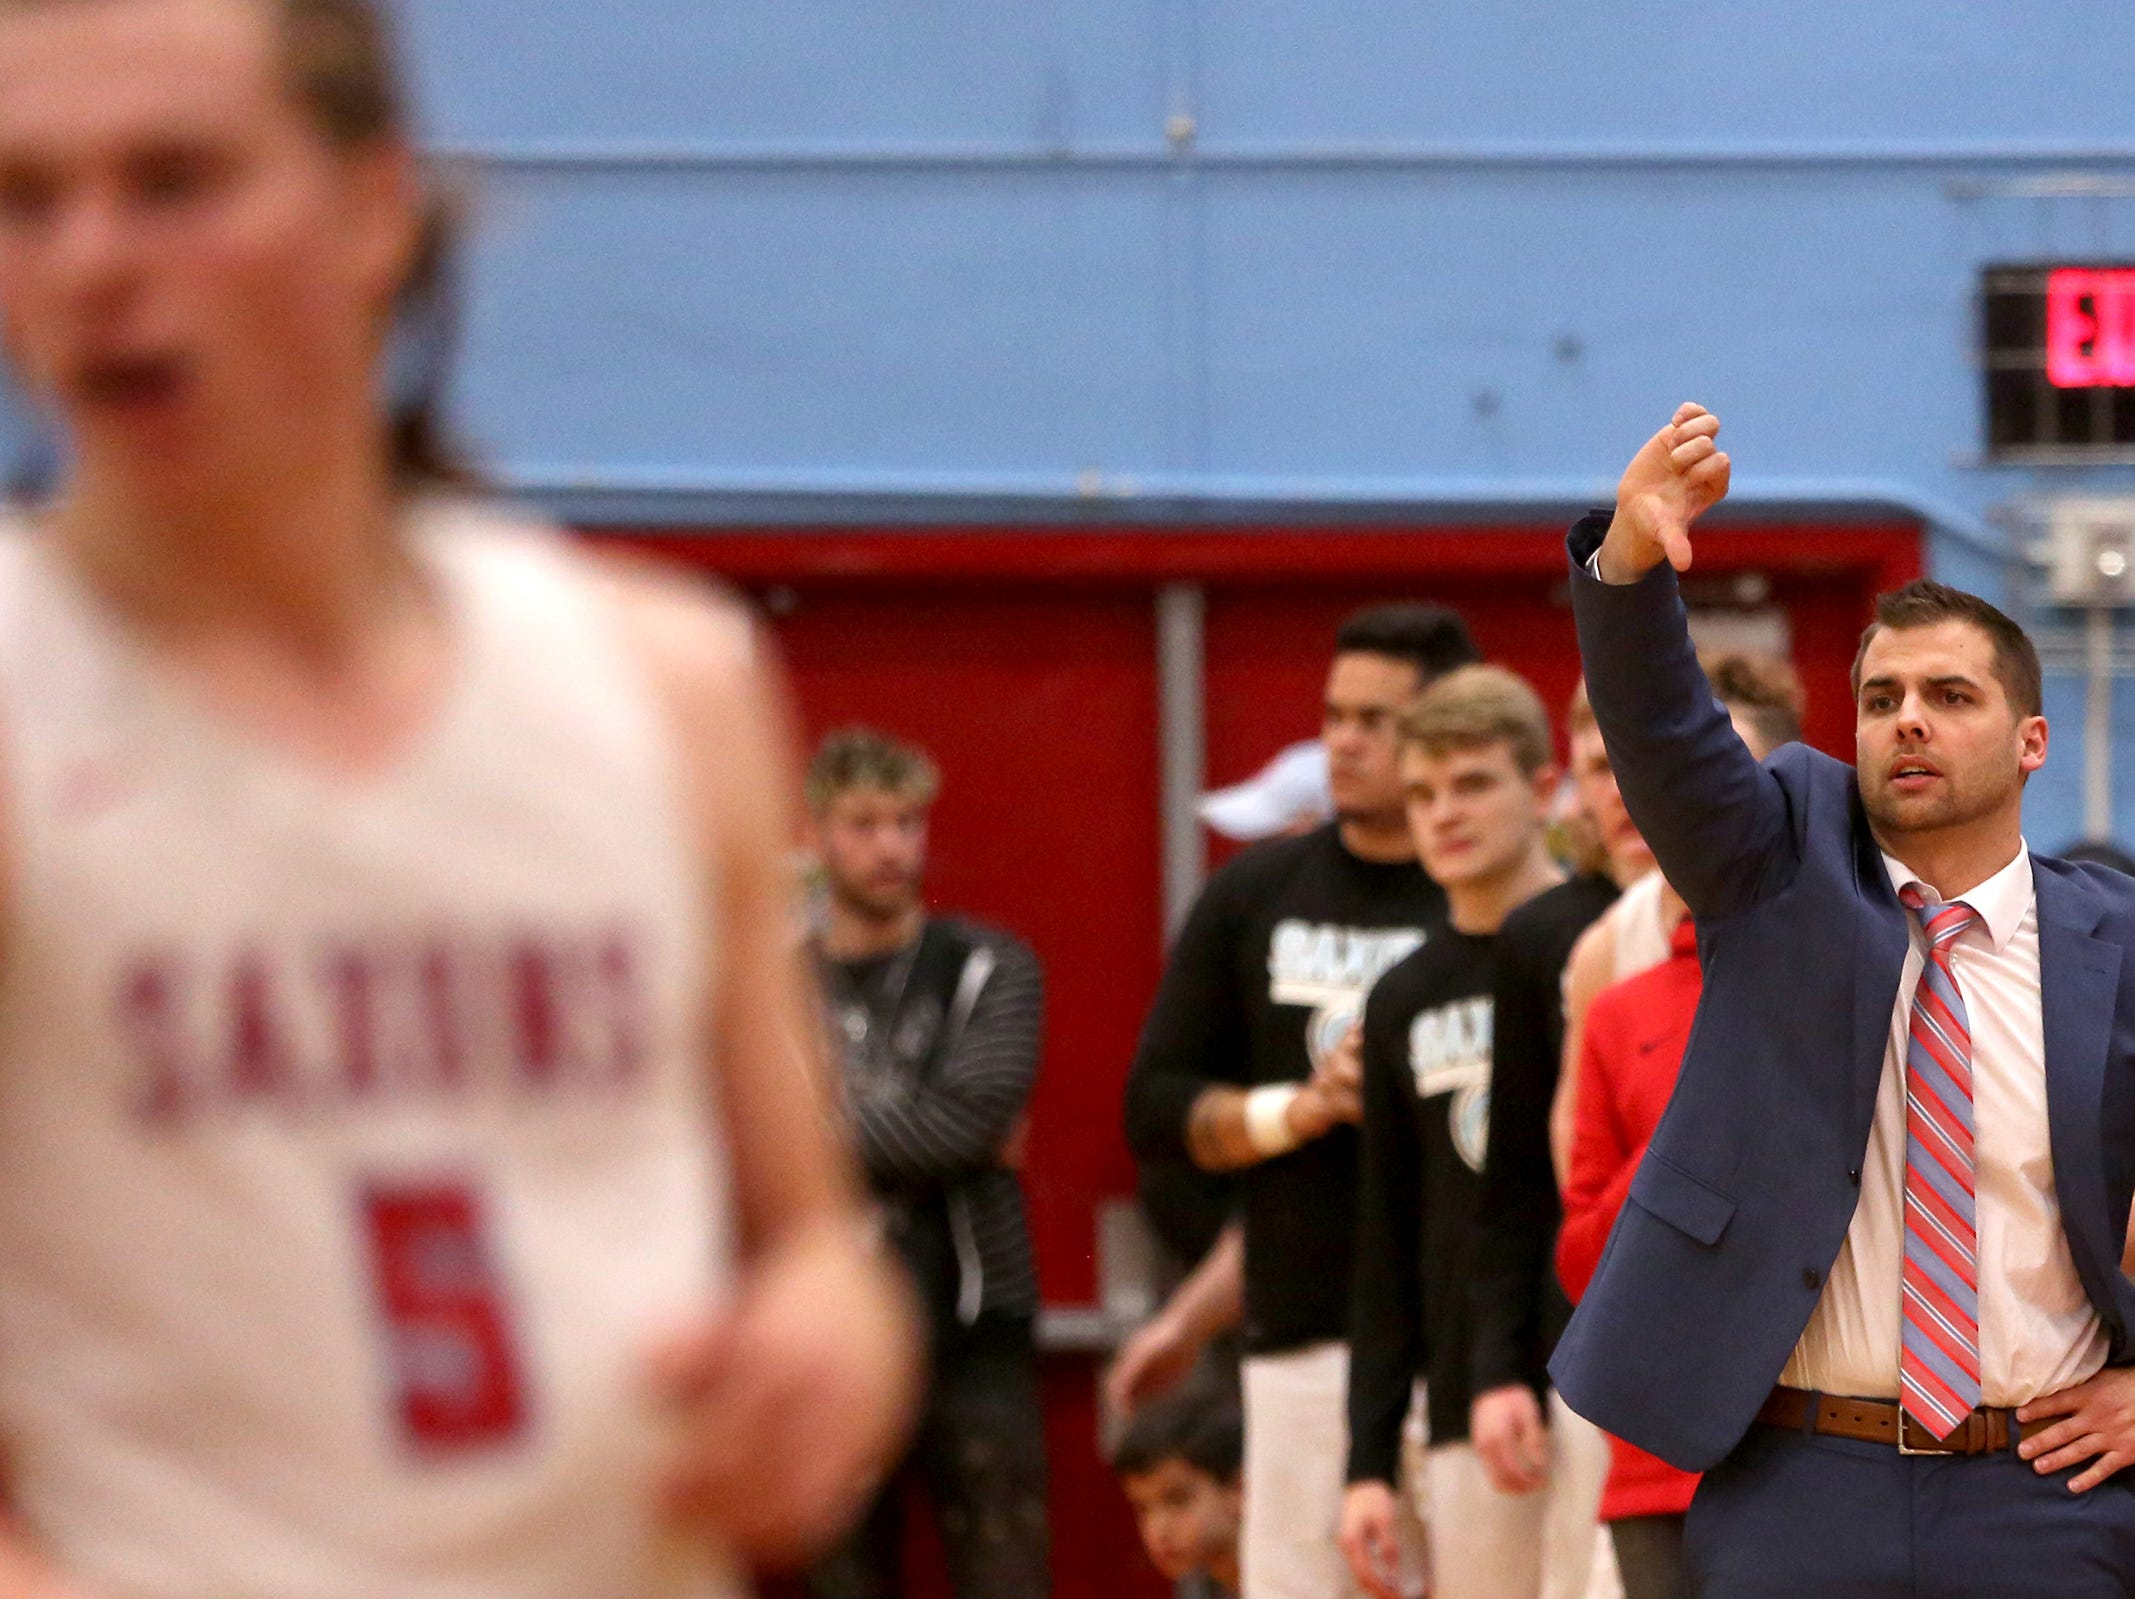 South Salem's head coach Tyler Allen calls to his players during the South Salem vs. West Linn boys basketball OSAA playoff game at South Salem High School on Friday, March 1, 2019.